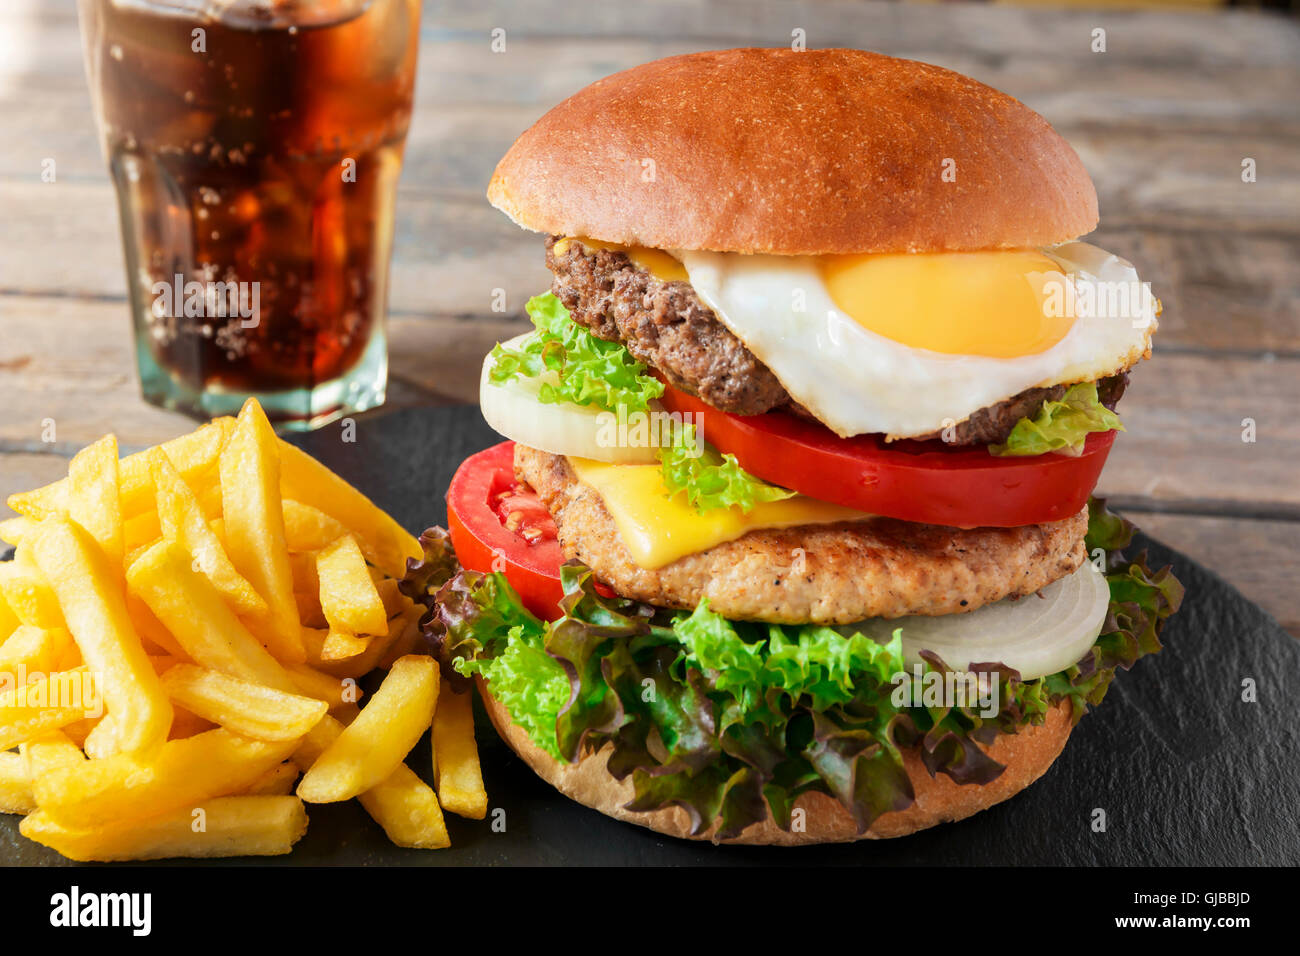 hamburger meat cutlet egg cheese french fries - Stock Image